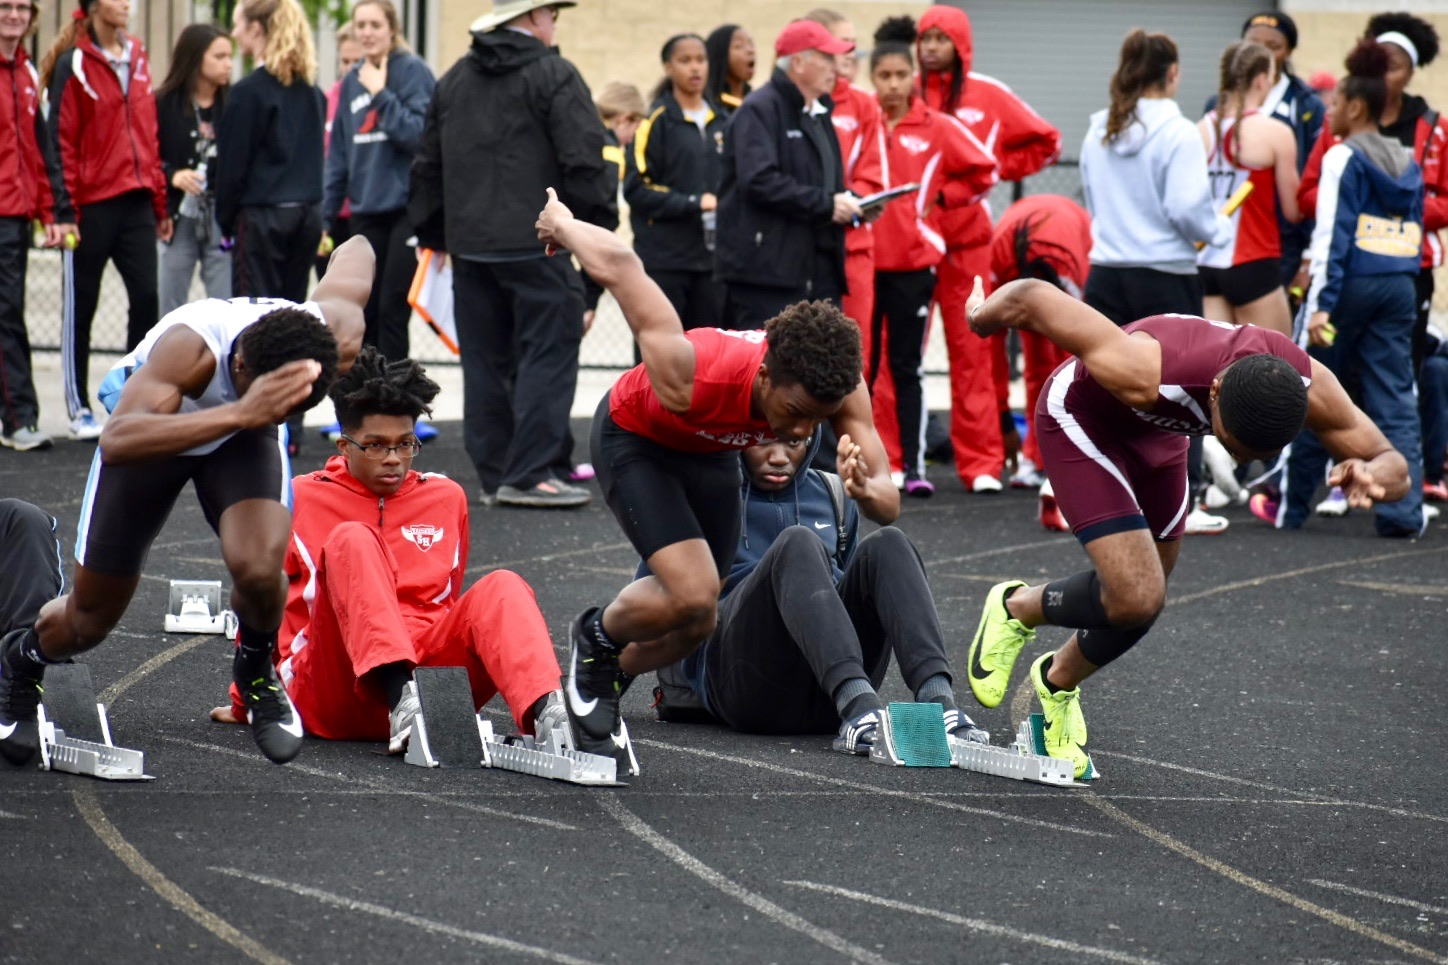 Sophomore Tivaughn Robinson runs the 100 meter dash at the OHSAA Division 1 district meet at Mayfield High School. He finished second and advanced to regionals.